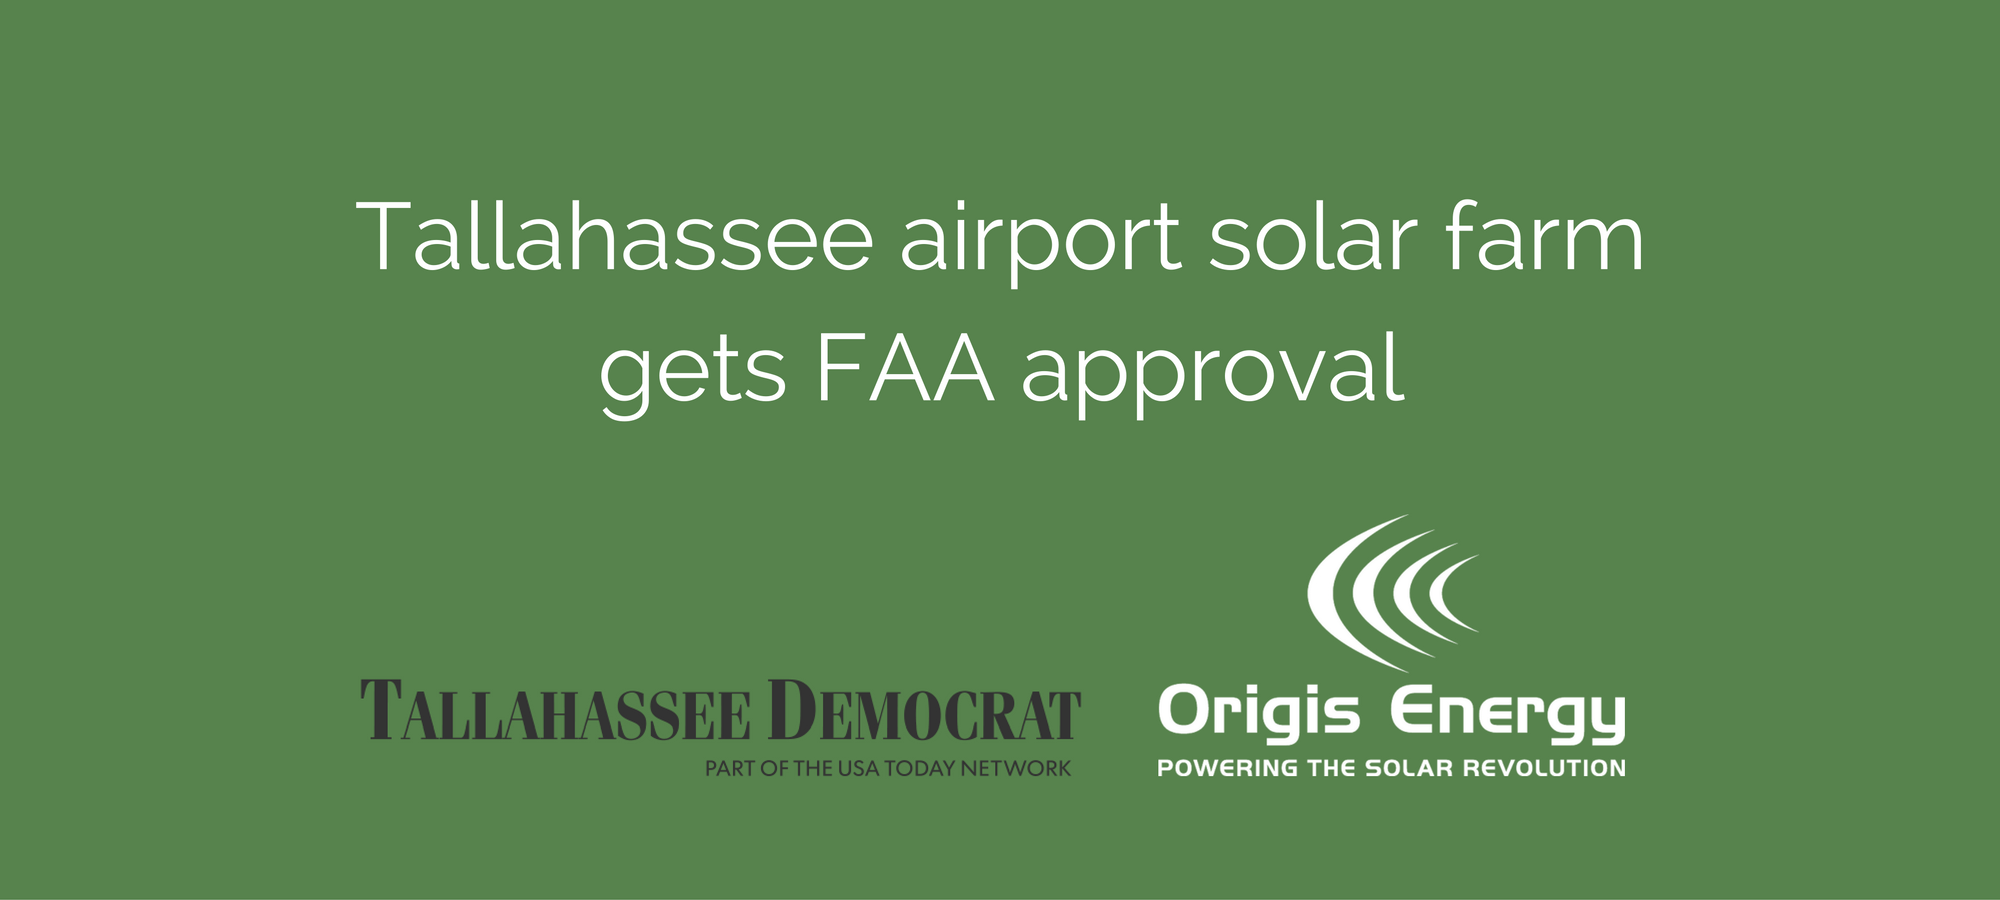 Tallahassee airport solar farm gets FAA approval - Origis Energy